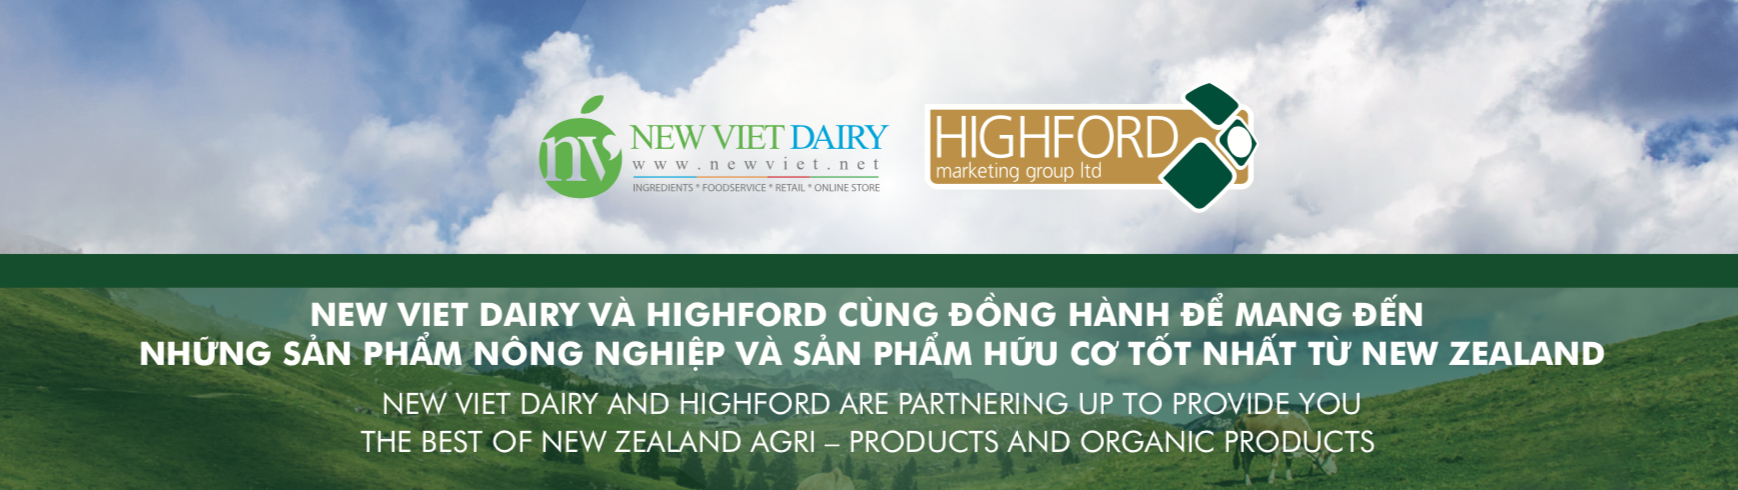 HIGHFORD – NEW ZEALAND MEAT AND SEAFOODS